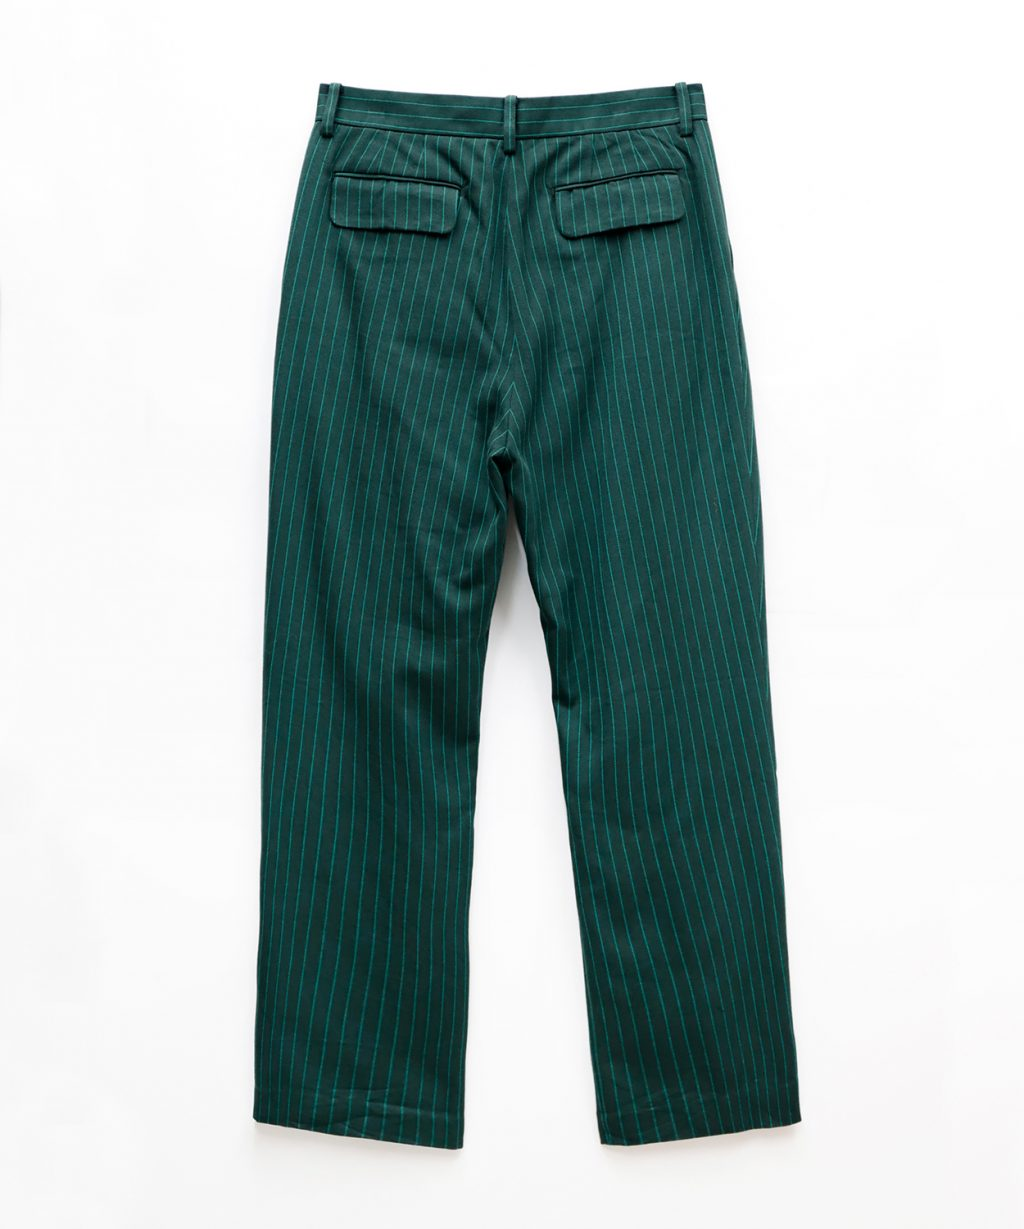 TWO-TUCK-STRIPE-PANTS-green2-1024x1229.jpg